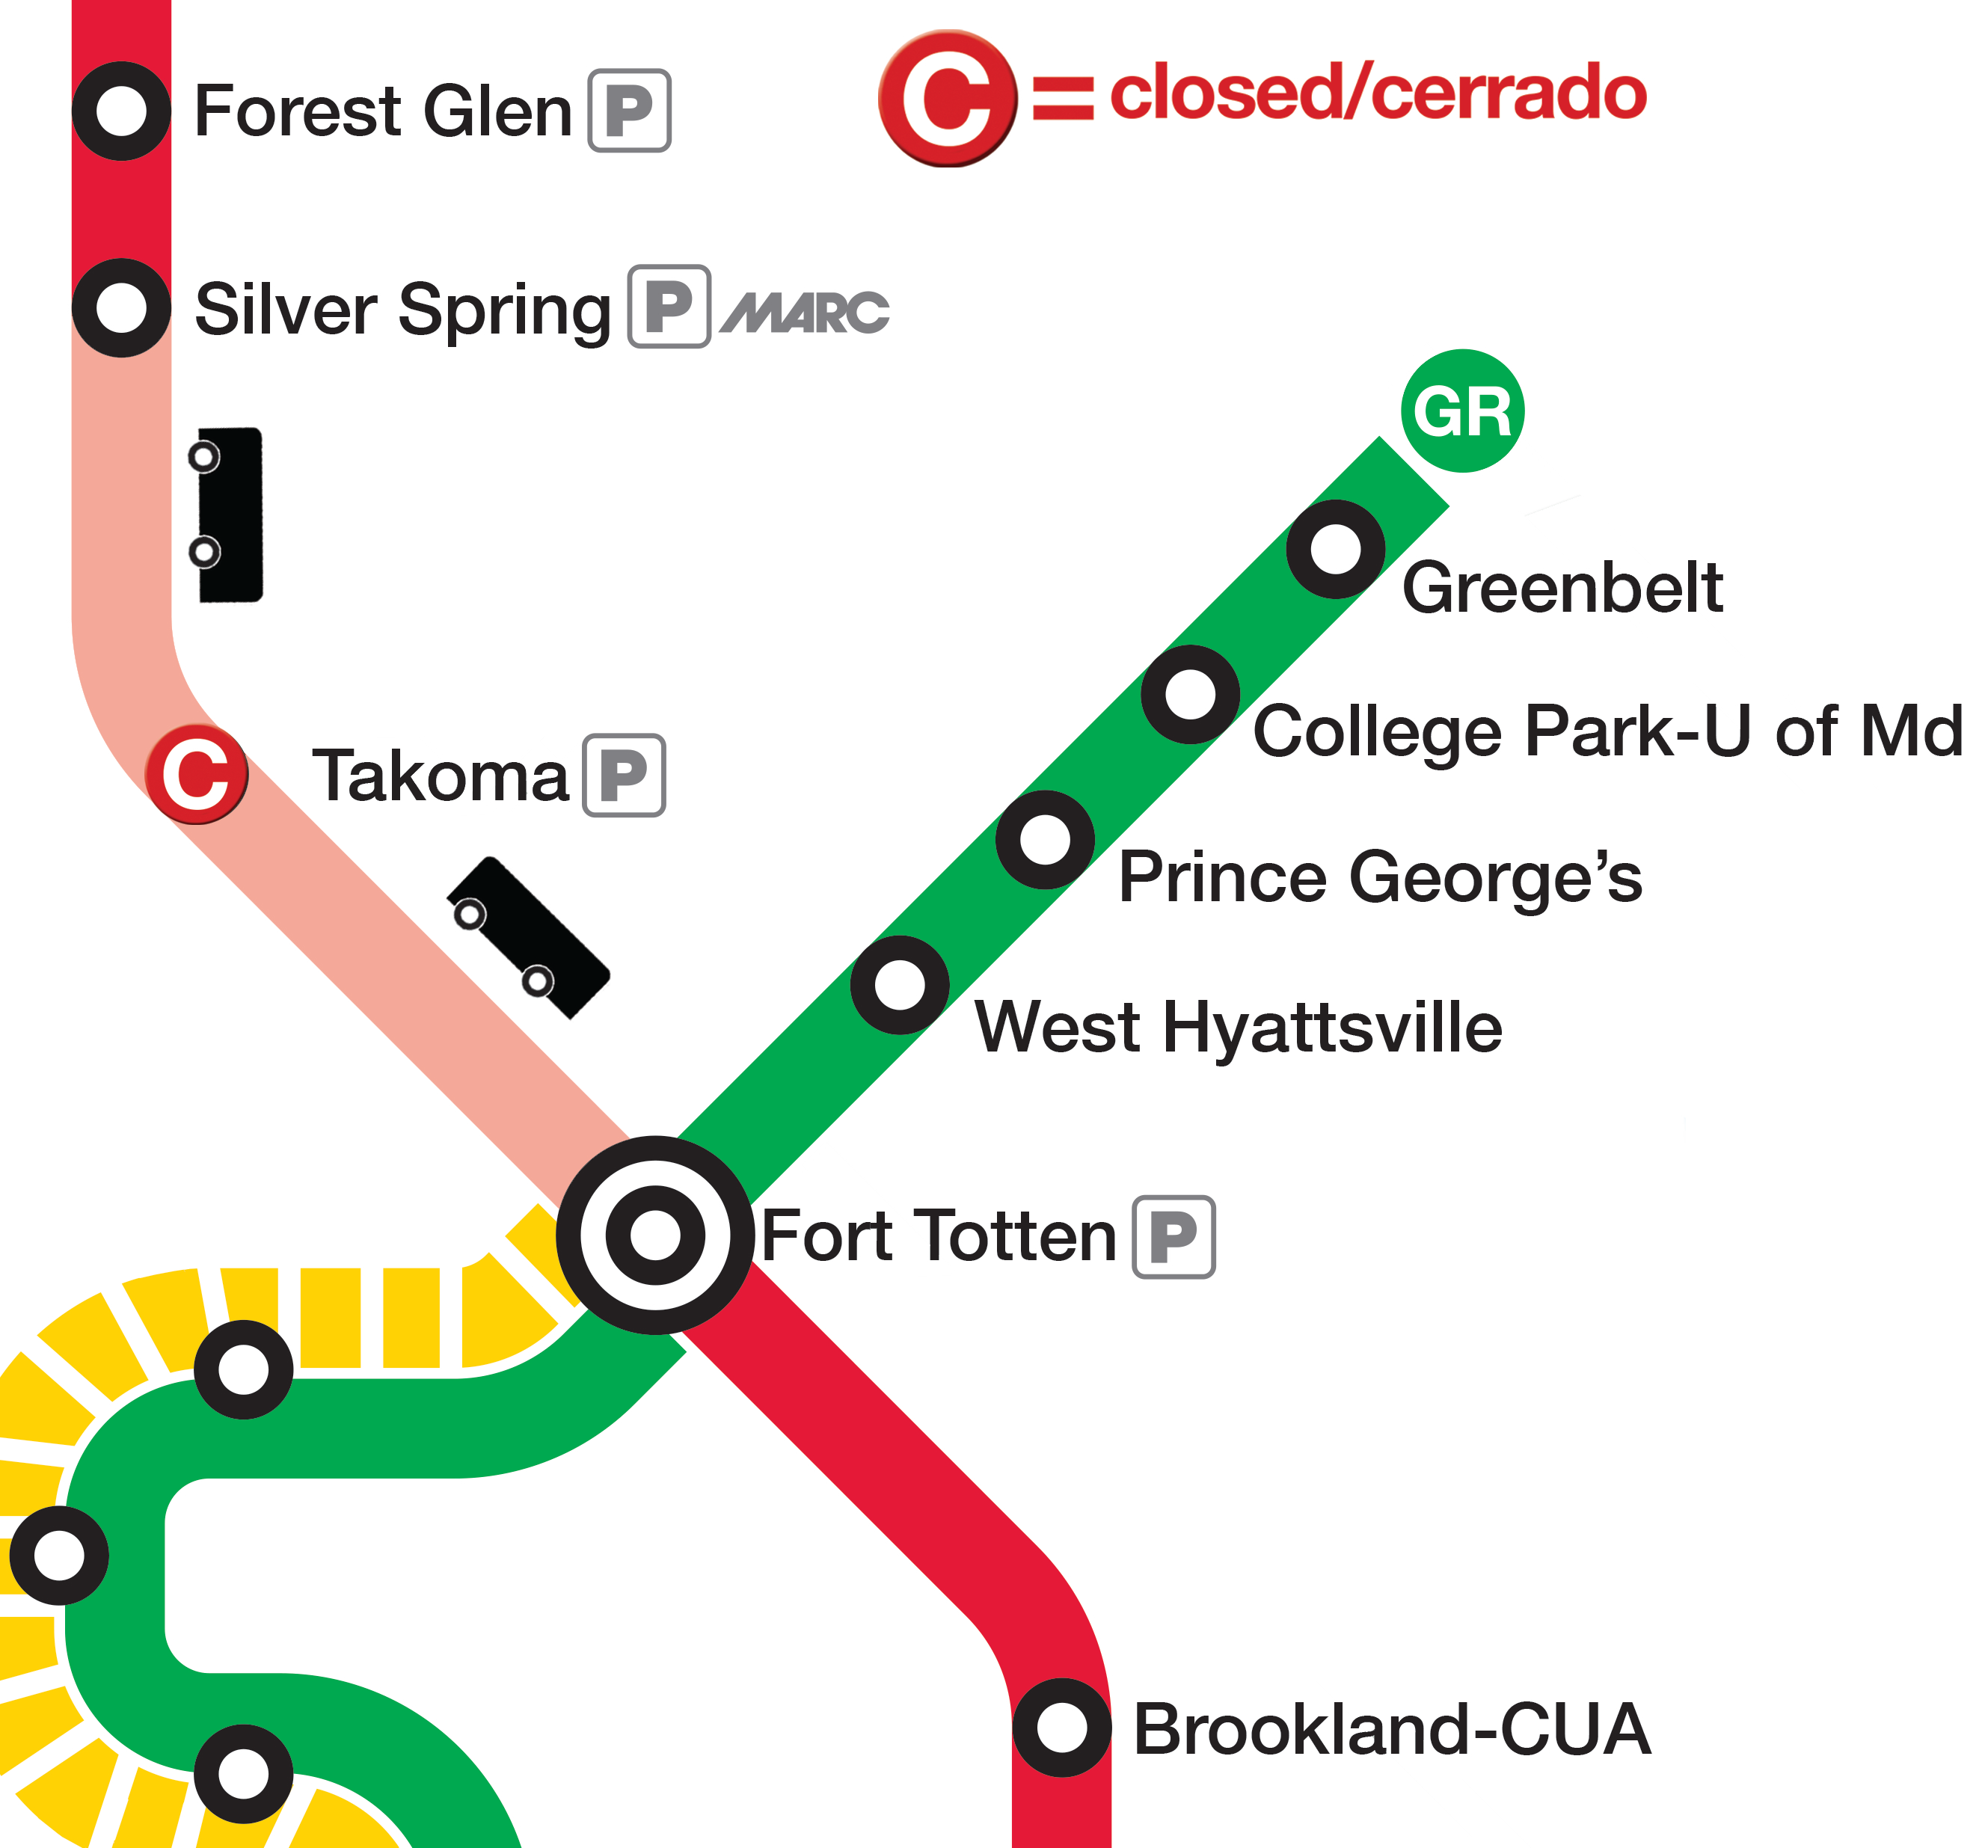 Red Line No Trains Between Silver Spring Fort Totten Takoma